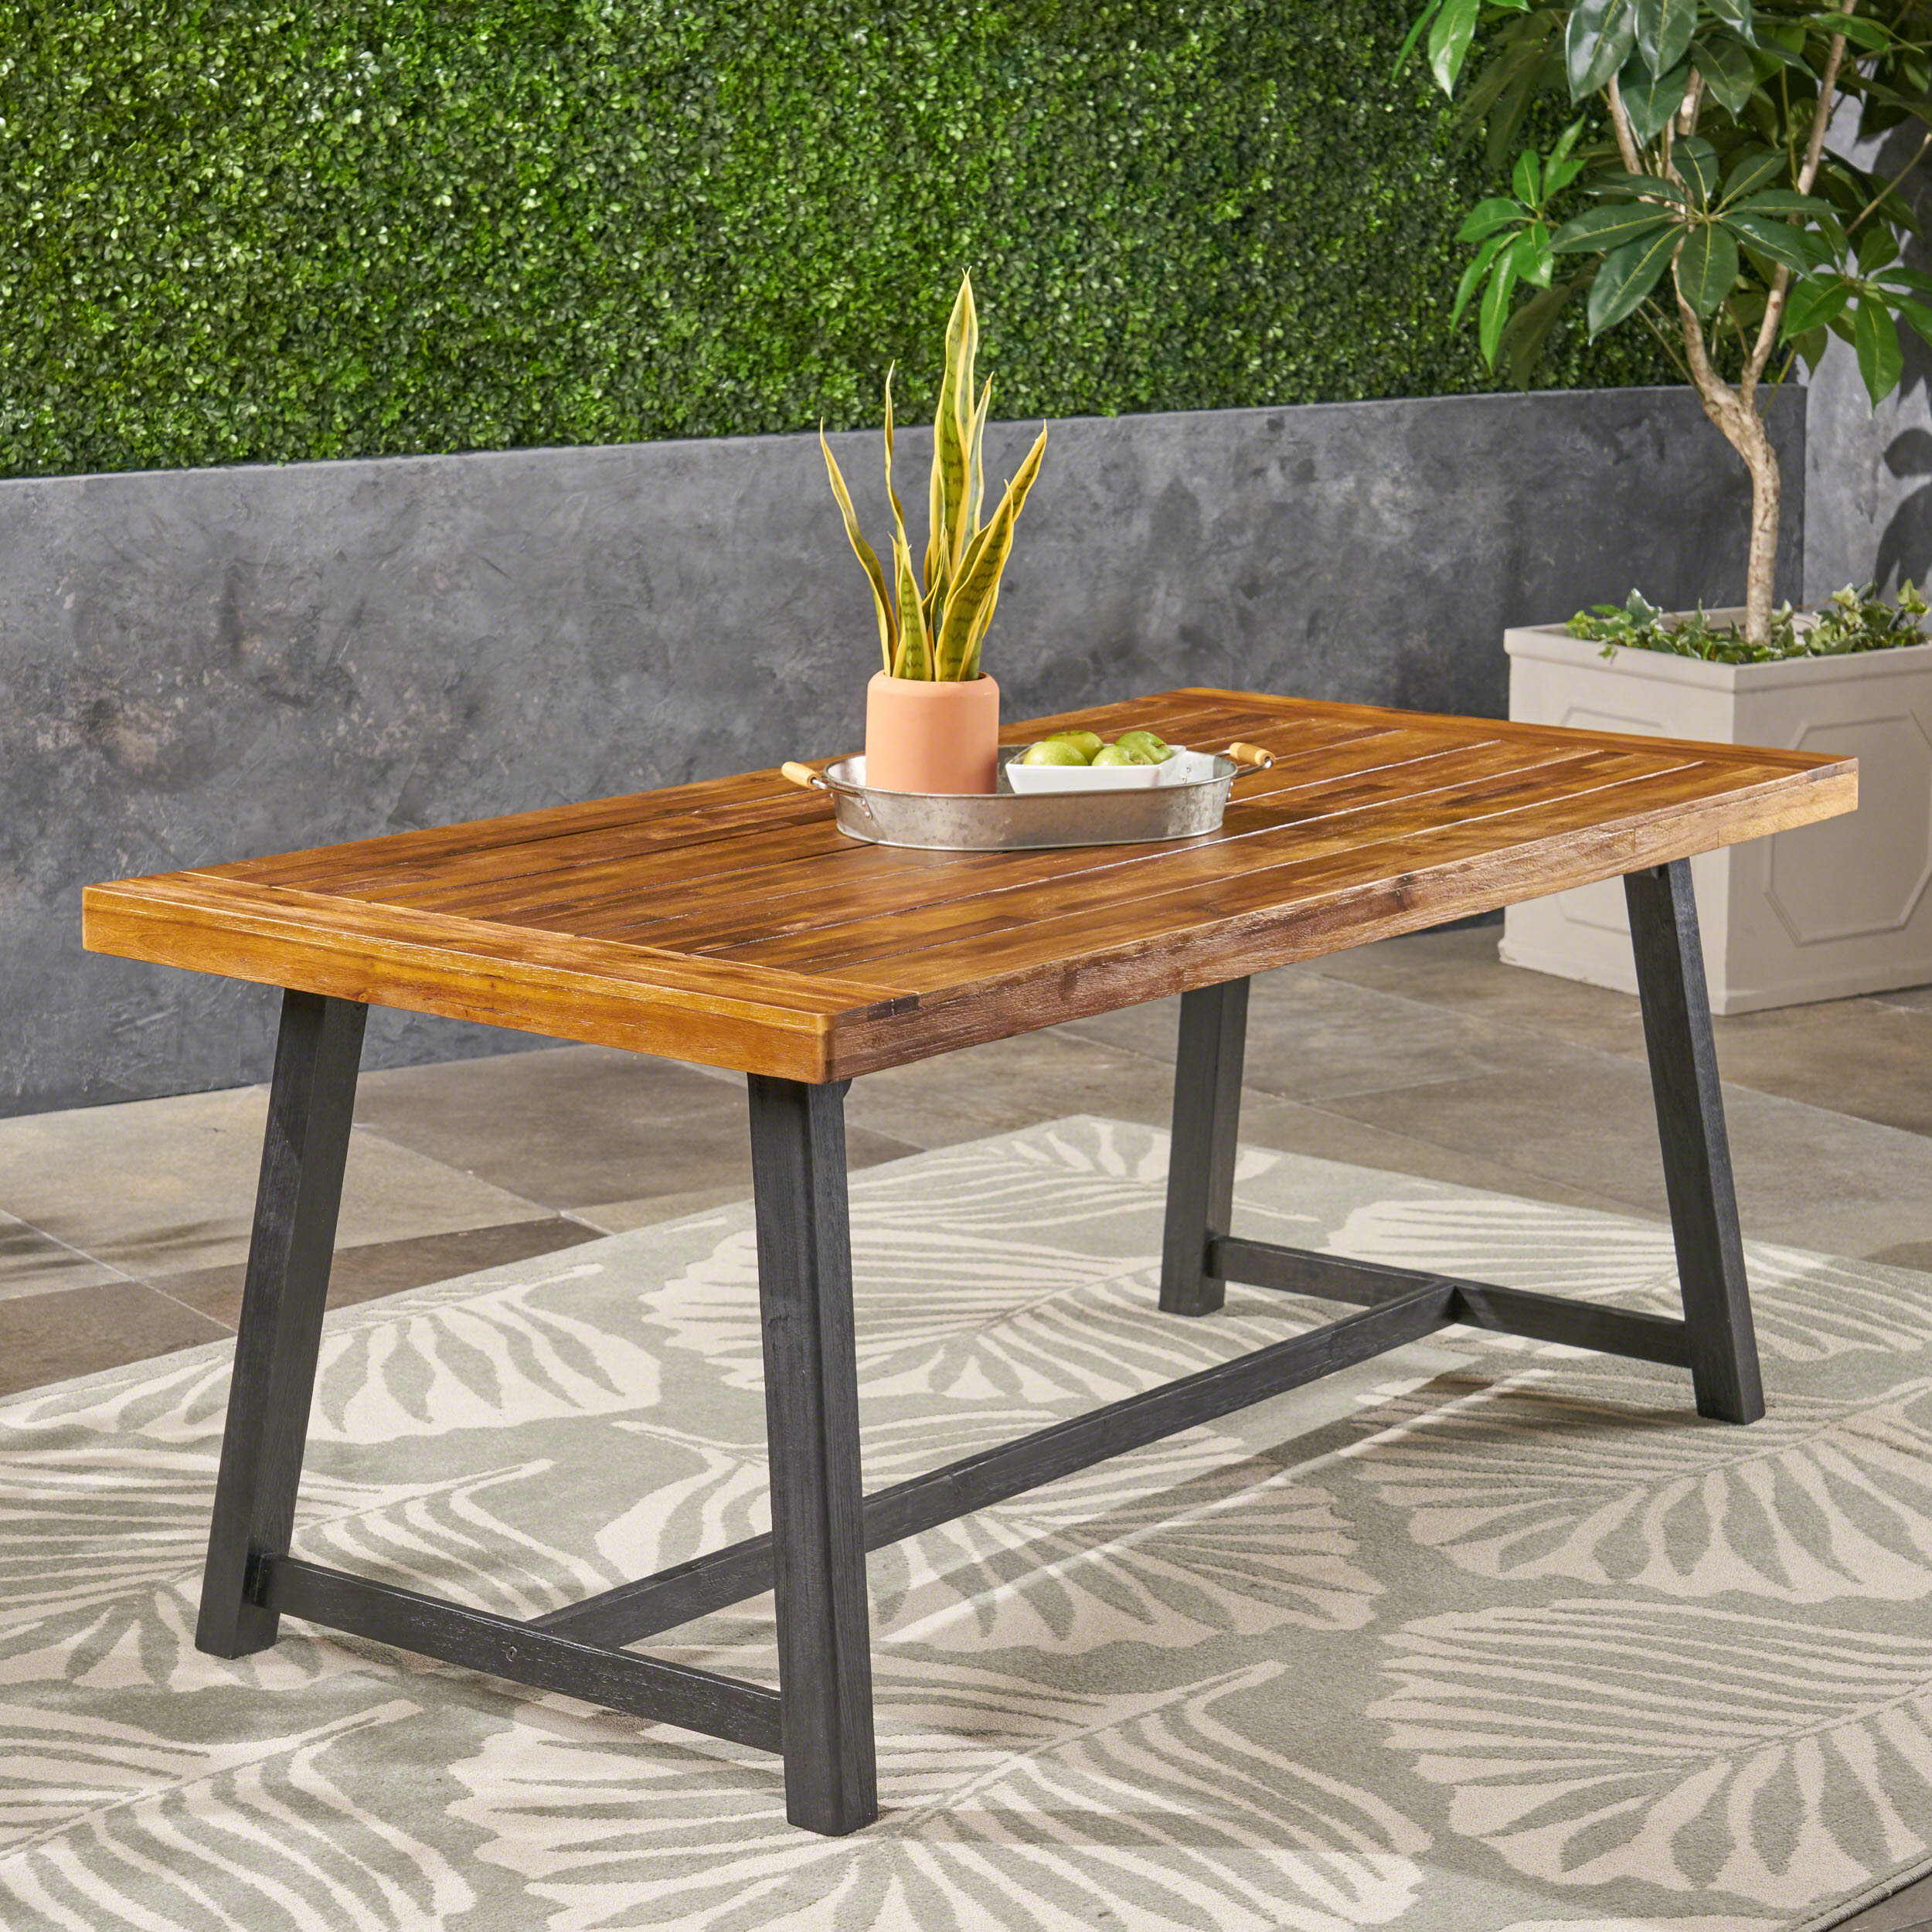 Luka Outdoor Acacia Wood Dining Table, Sandlblast Teak For Most Recently Released Nalan 38'' Dining Tables (View 9 of 15)